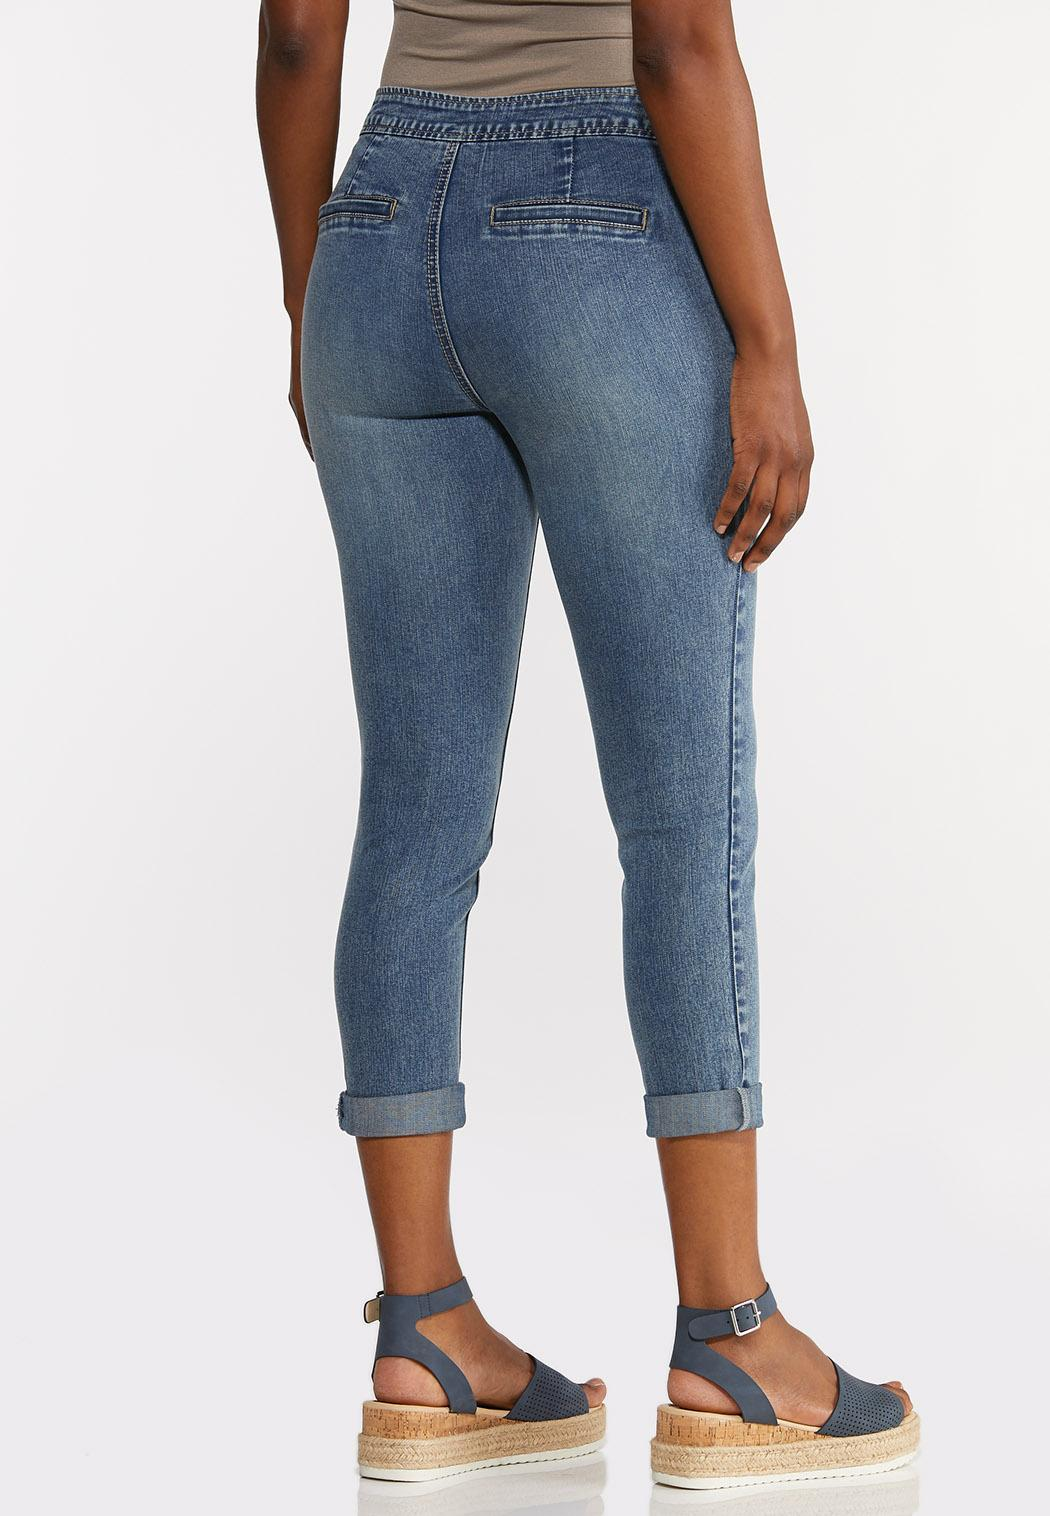 Cropped Tie Waist Jeans (Item #44290132)